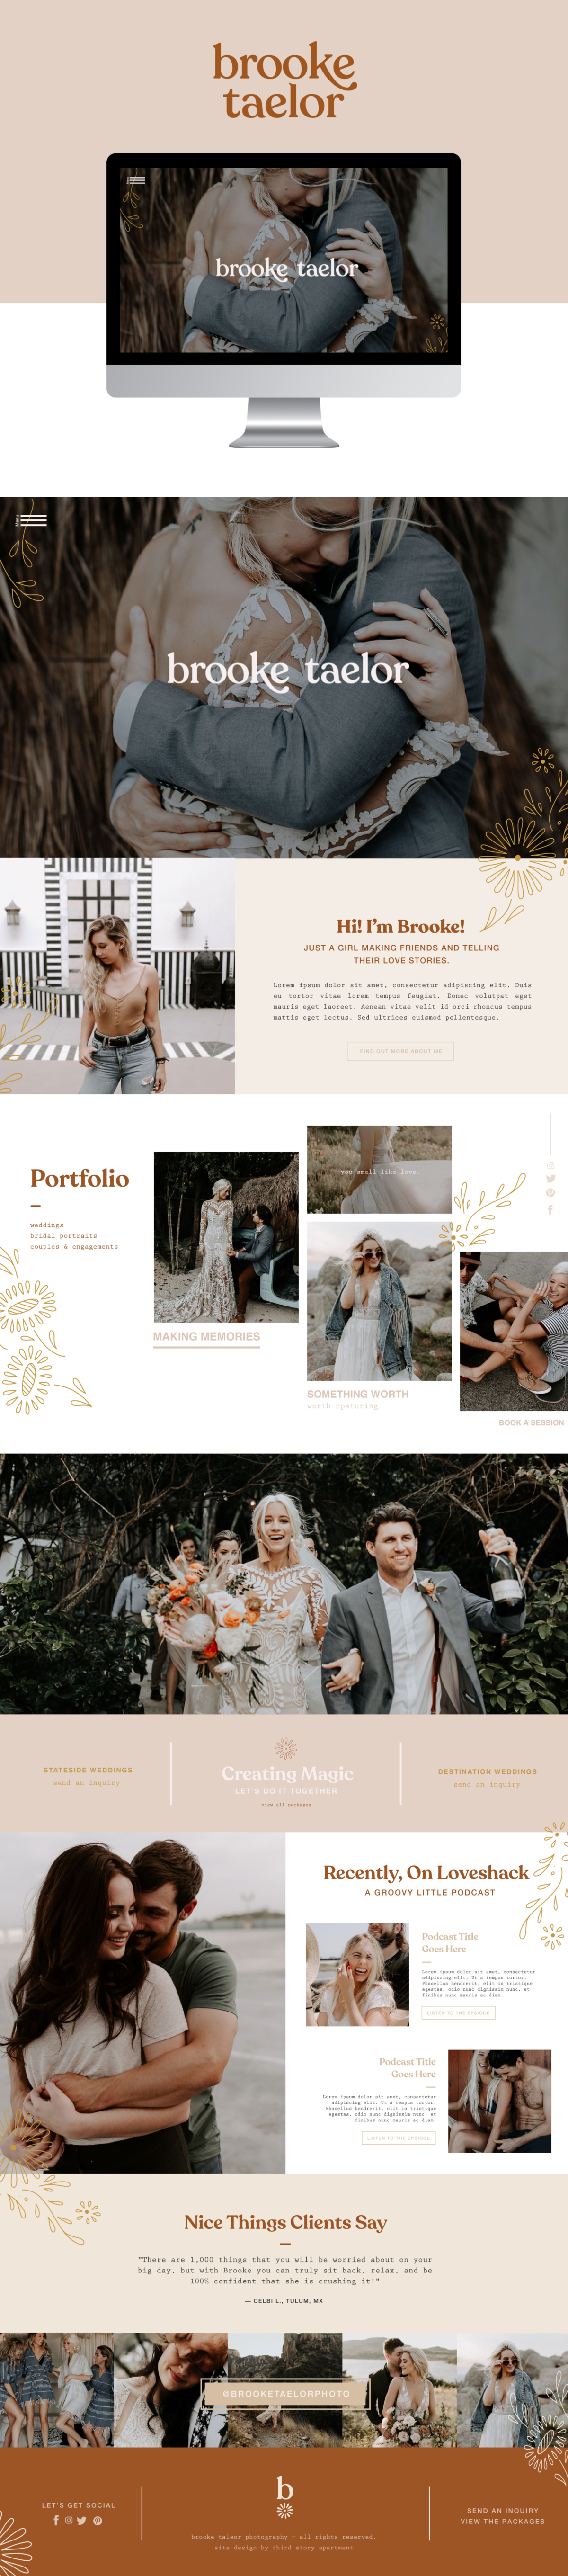 ThirdStory-Template-Desktop-And-Layout-BrookeTaelor